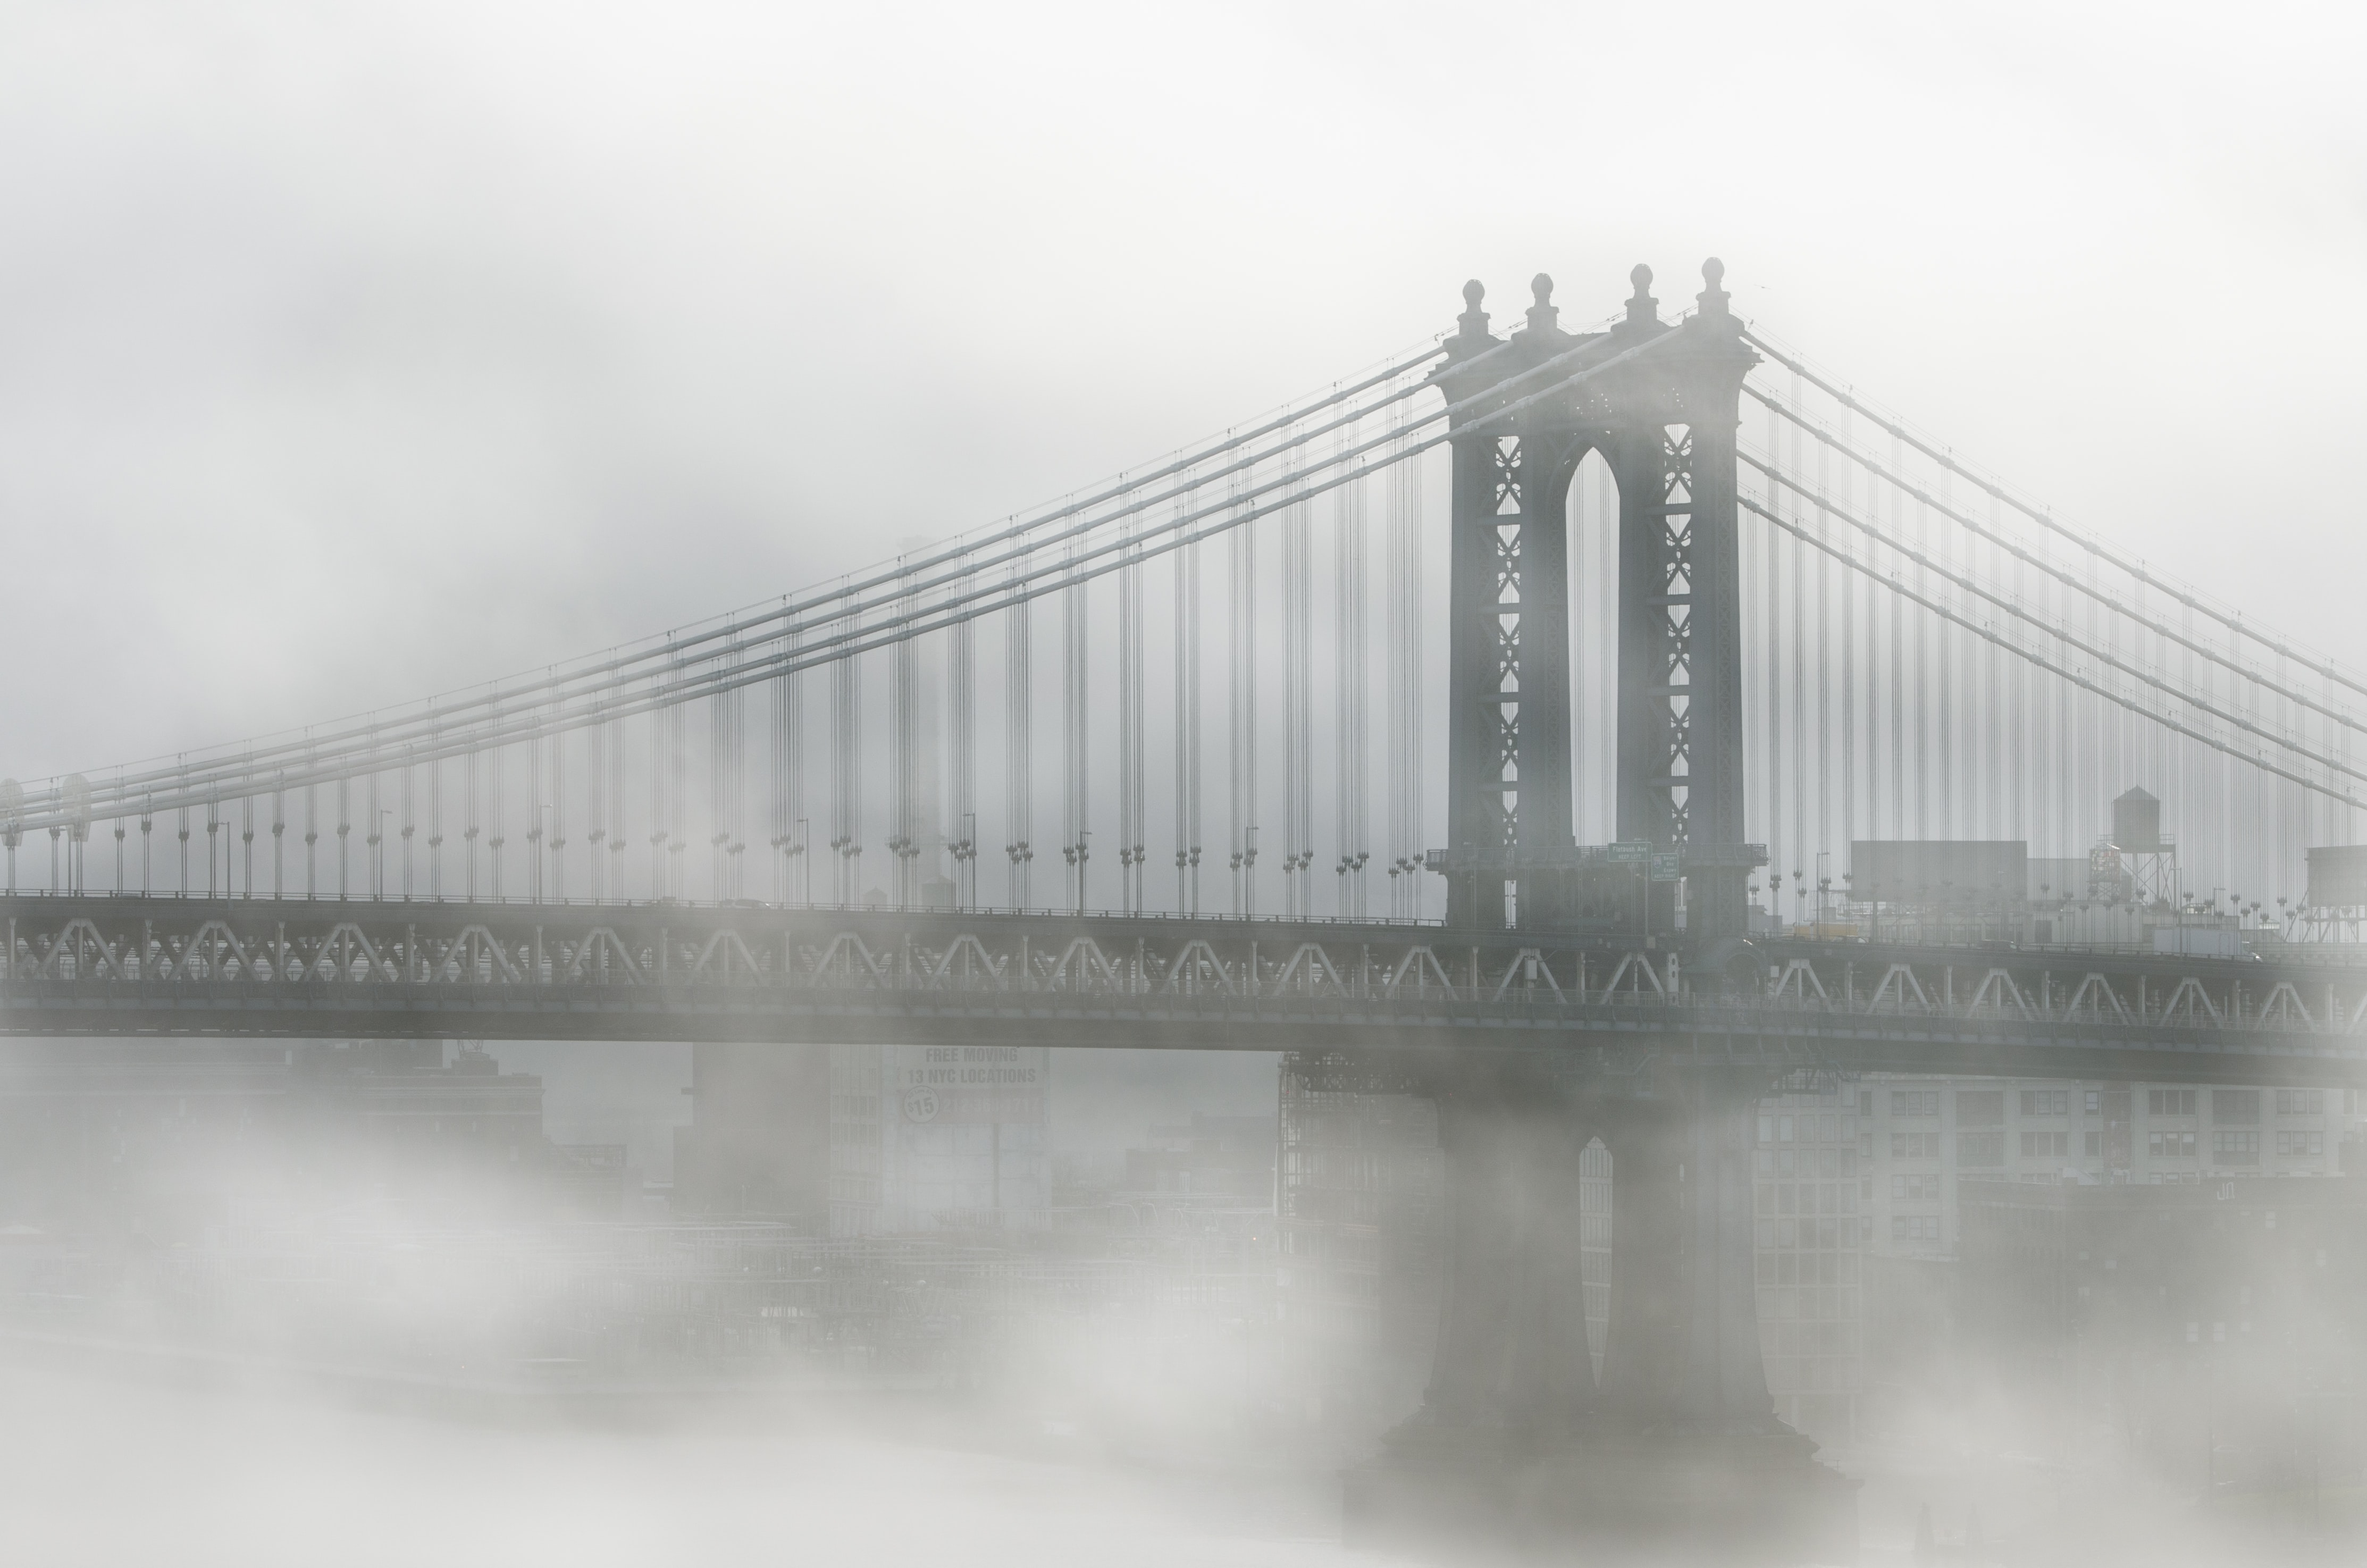 fog over Brooklyn Bridge during daytime